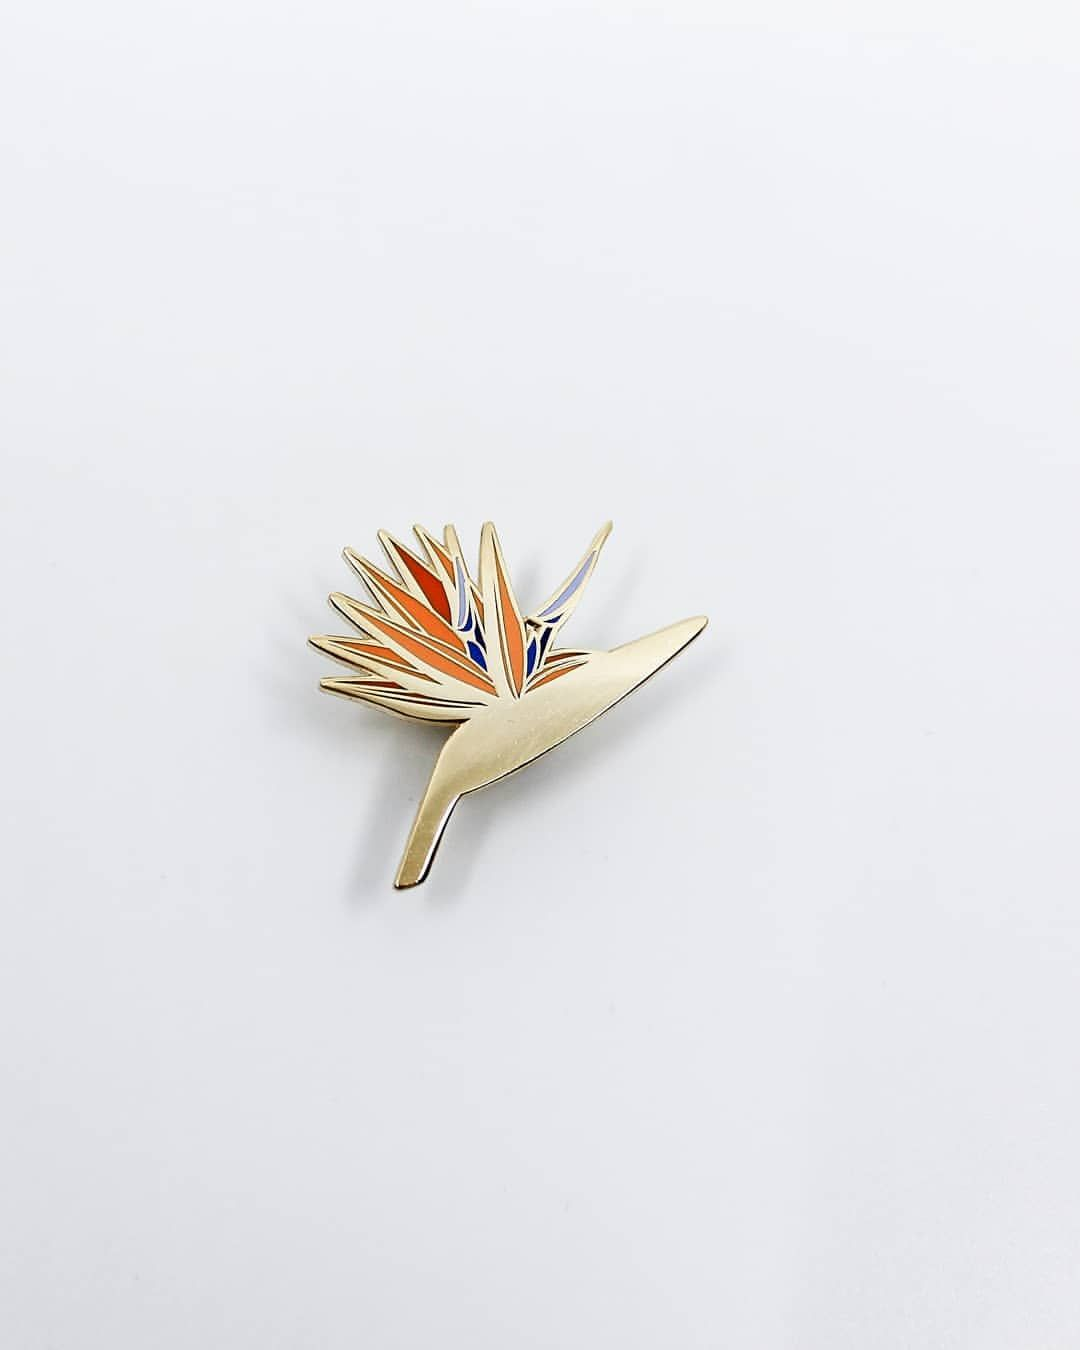 New Pin Bird Of Paradise Strelitzia Inspired By My First Trip To Maui This Gorgeous Pin Features Birds Of Paradise Flower Birds Of Paradise Cloisonne Pin